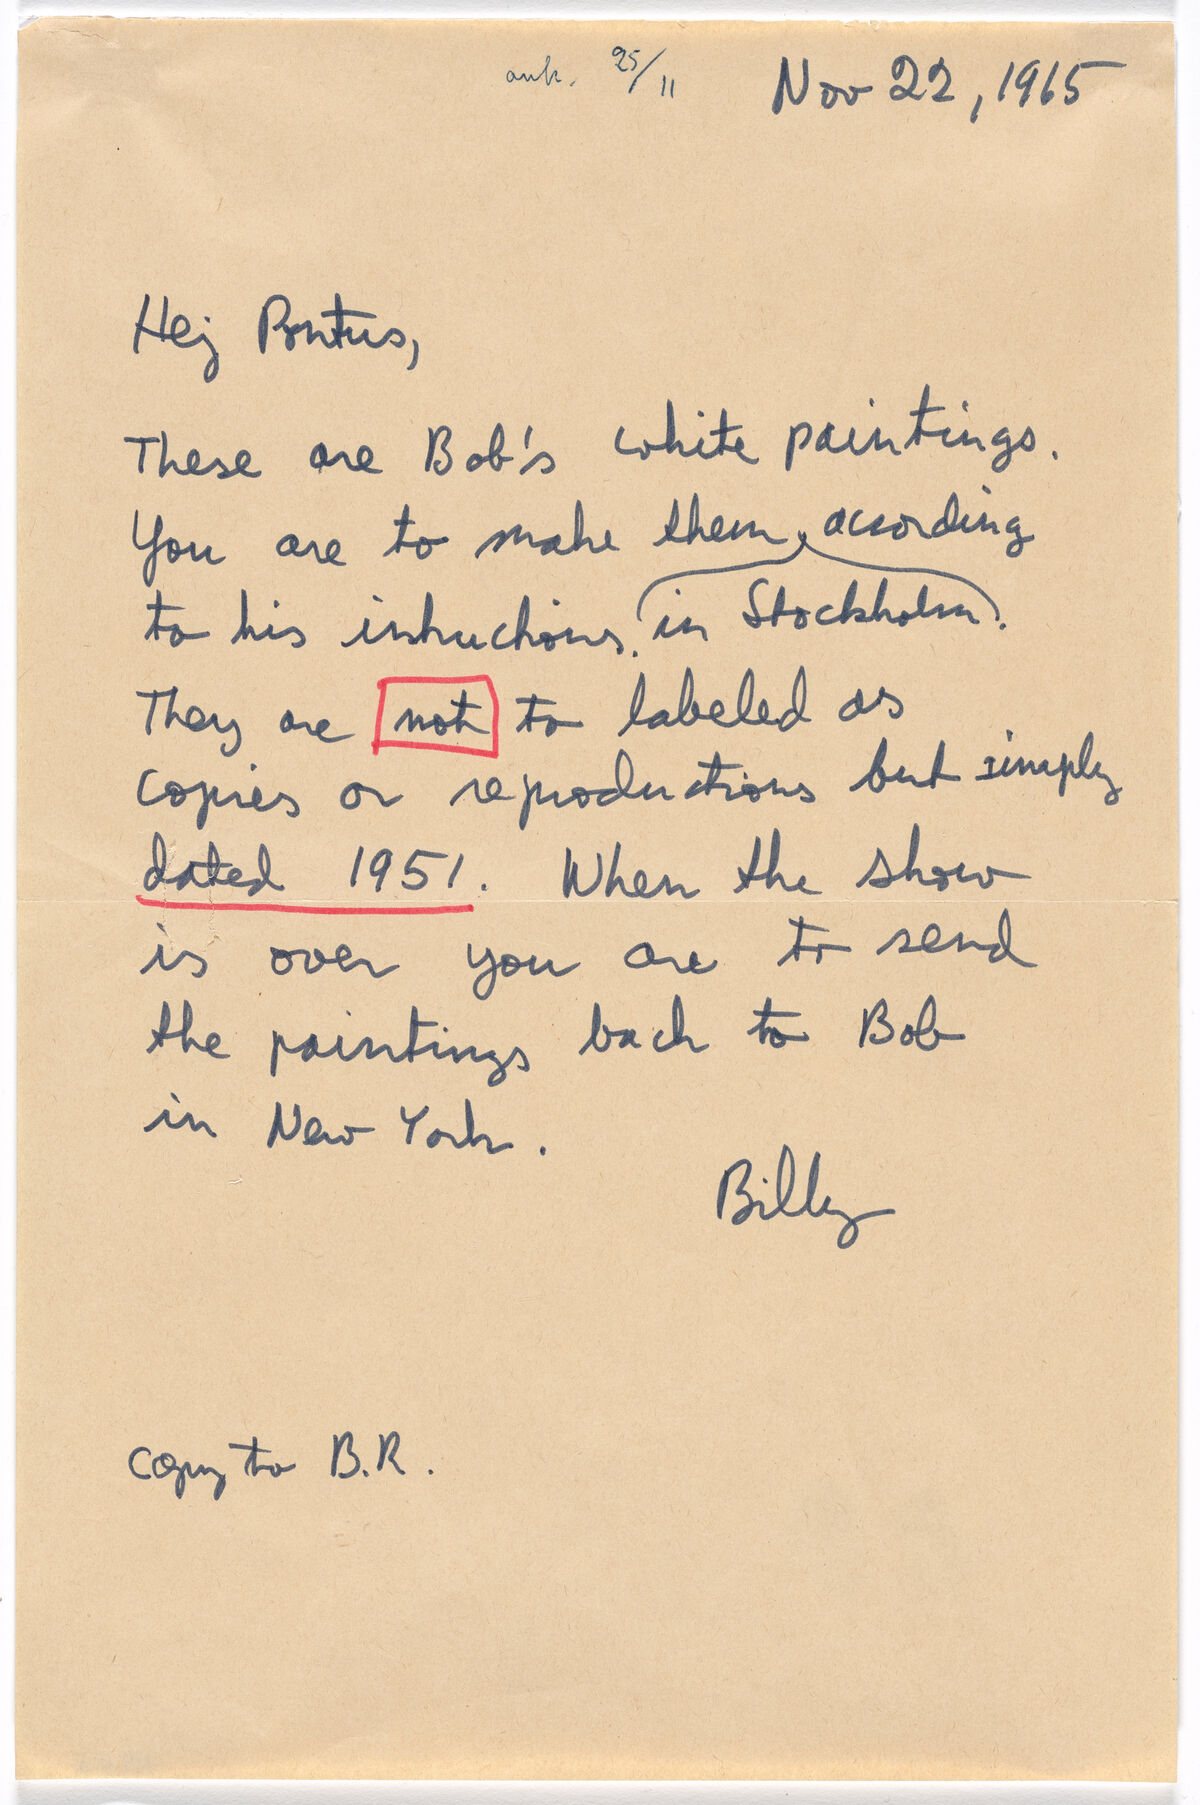 Robert Rauschenberg, Letter from Billy Klüver to Pontus Hulten regarding the fabrication of Rauschenberg's White Paintings- 1951, 1965. © 2019 Robert Rauschenberg Foundation. Courtesy of the Museum of Modern Art.